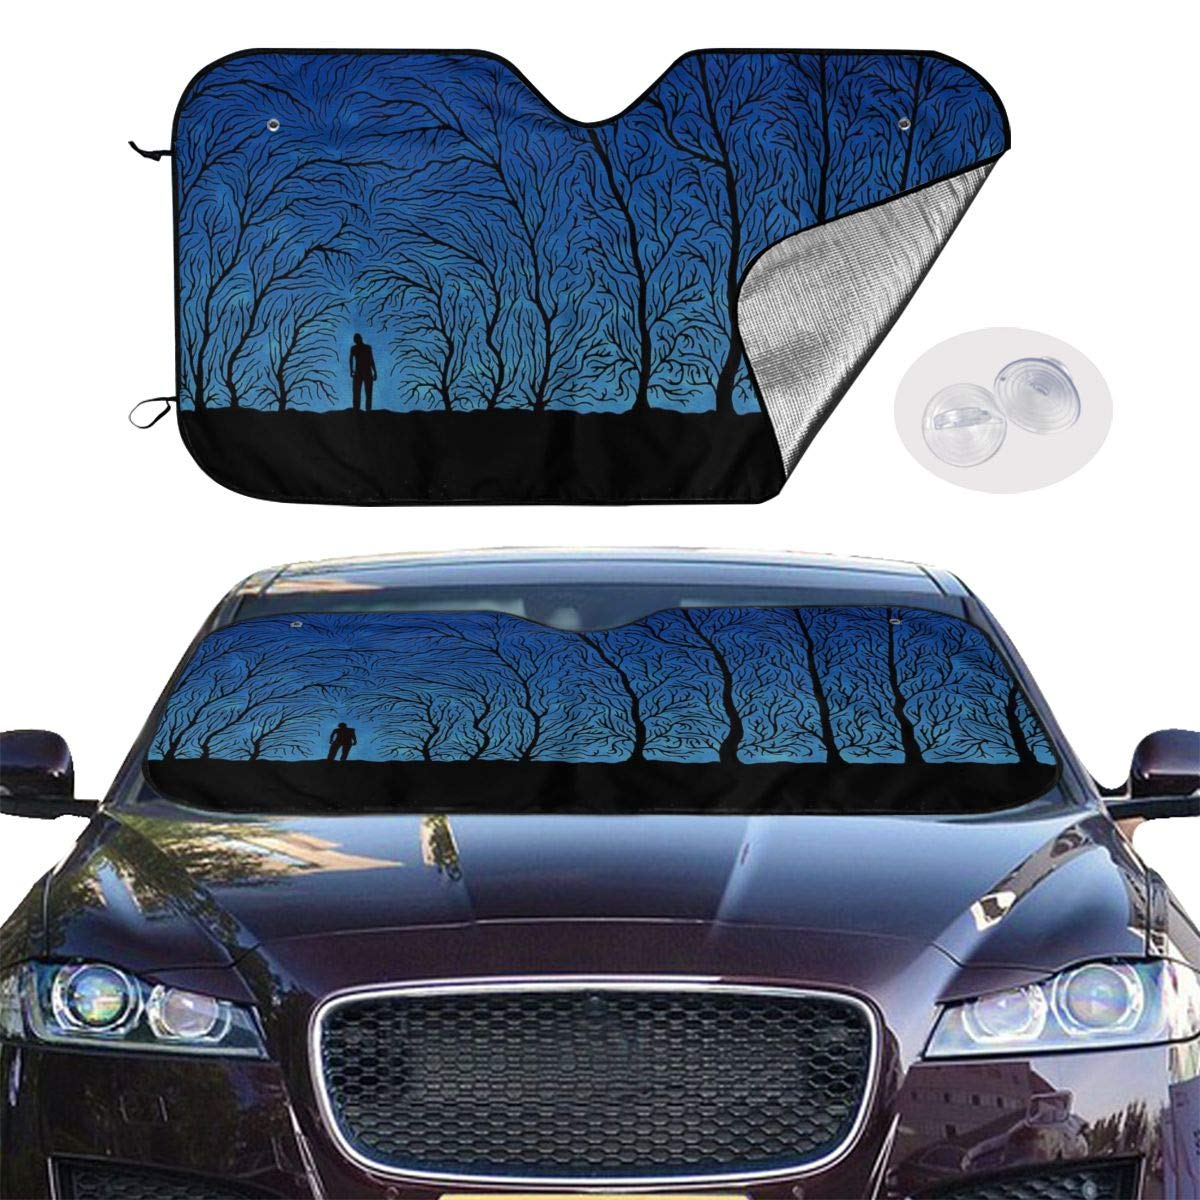 Windshield Sunshade for Car Foldable UV Ray Reflector Auto Front Window Sun Shade Visor Shield Cover, Keeps Vehicle Cool, Creepy Forest by Sha-de